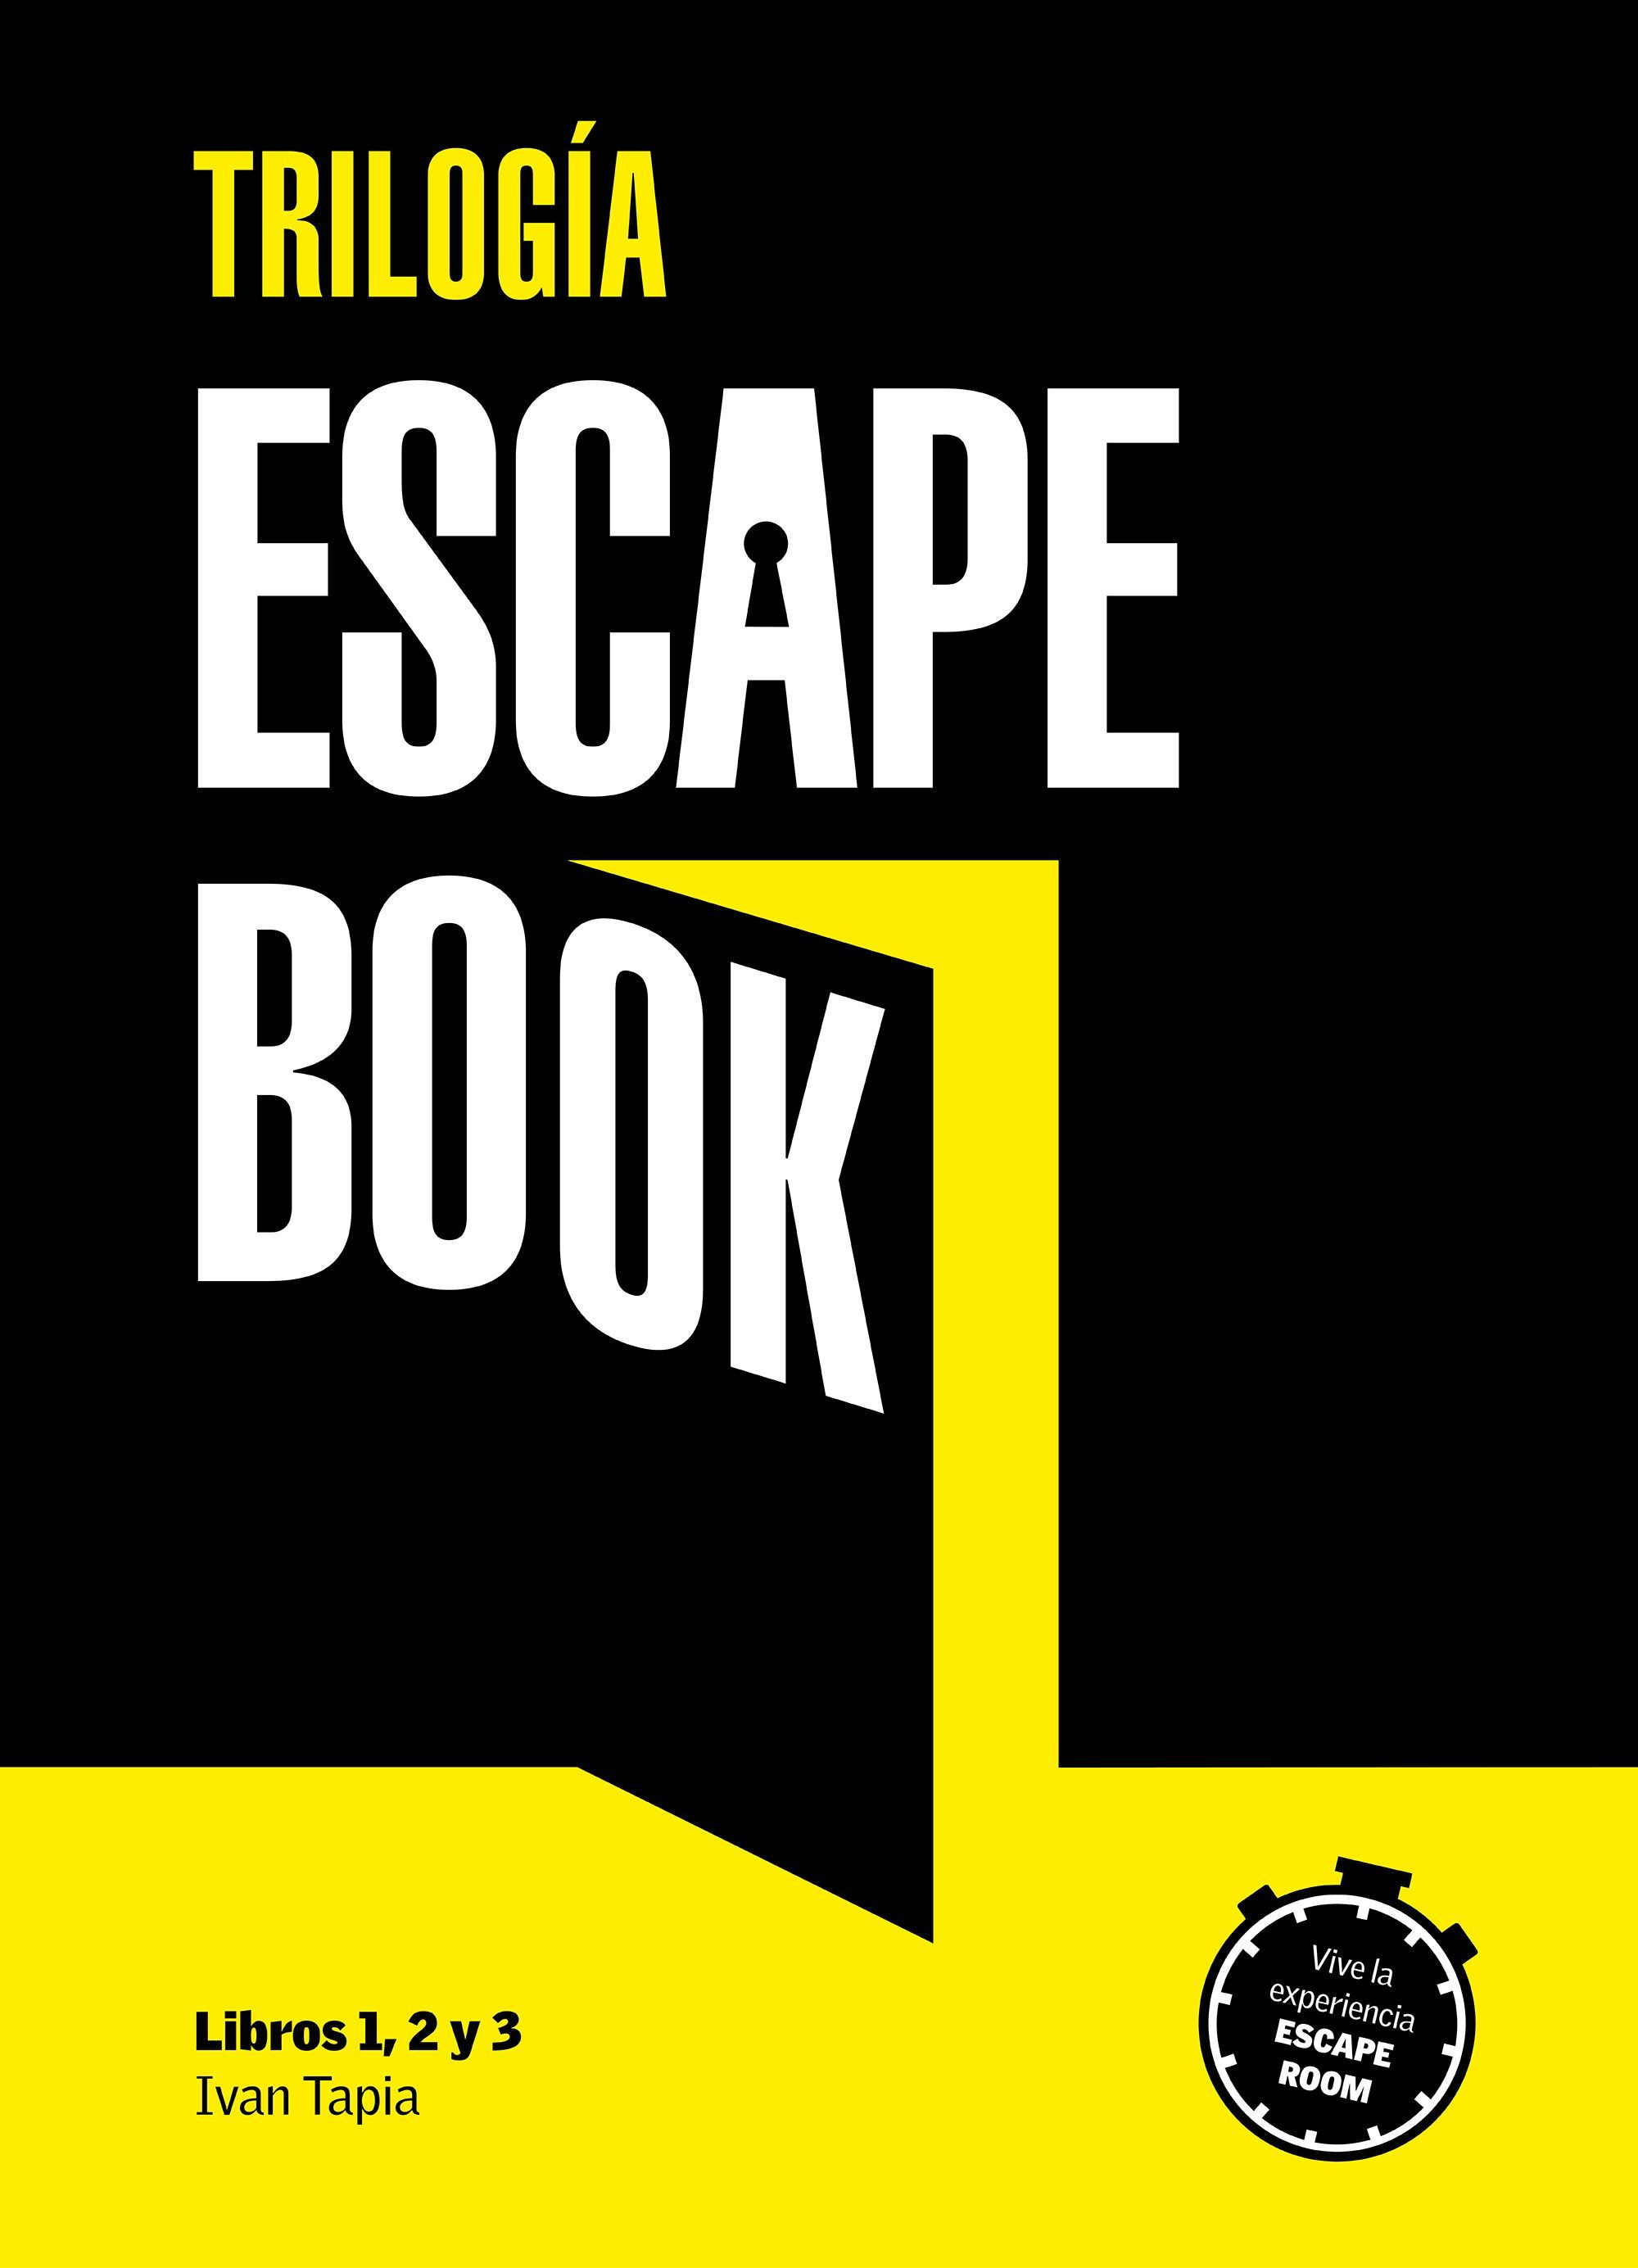 ESTUCHE ESCAPE BOOK